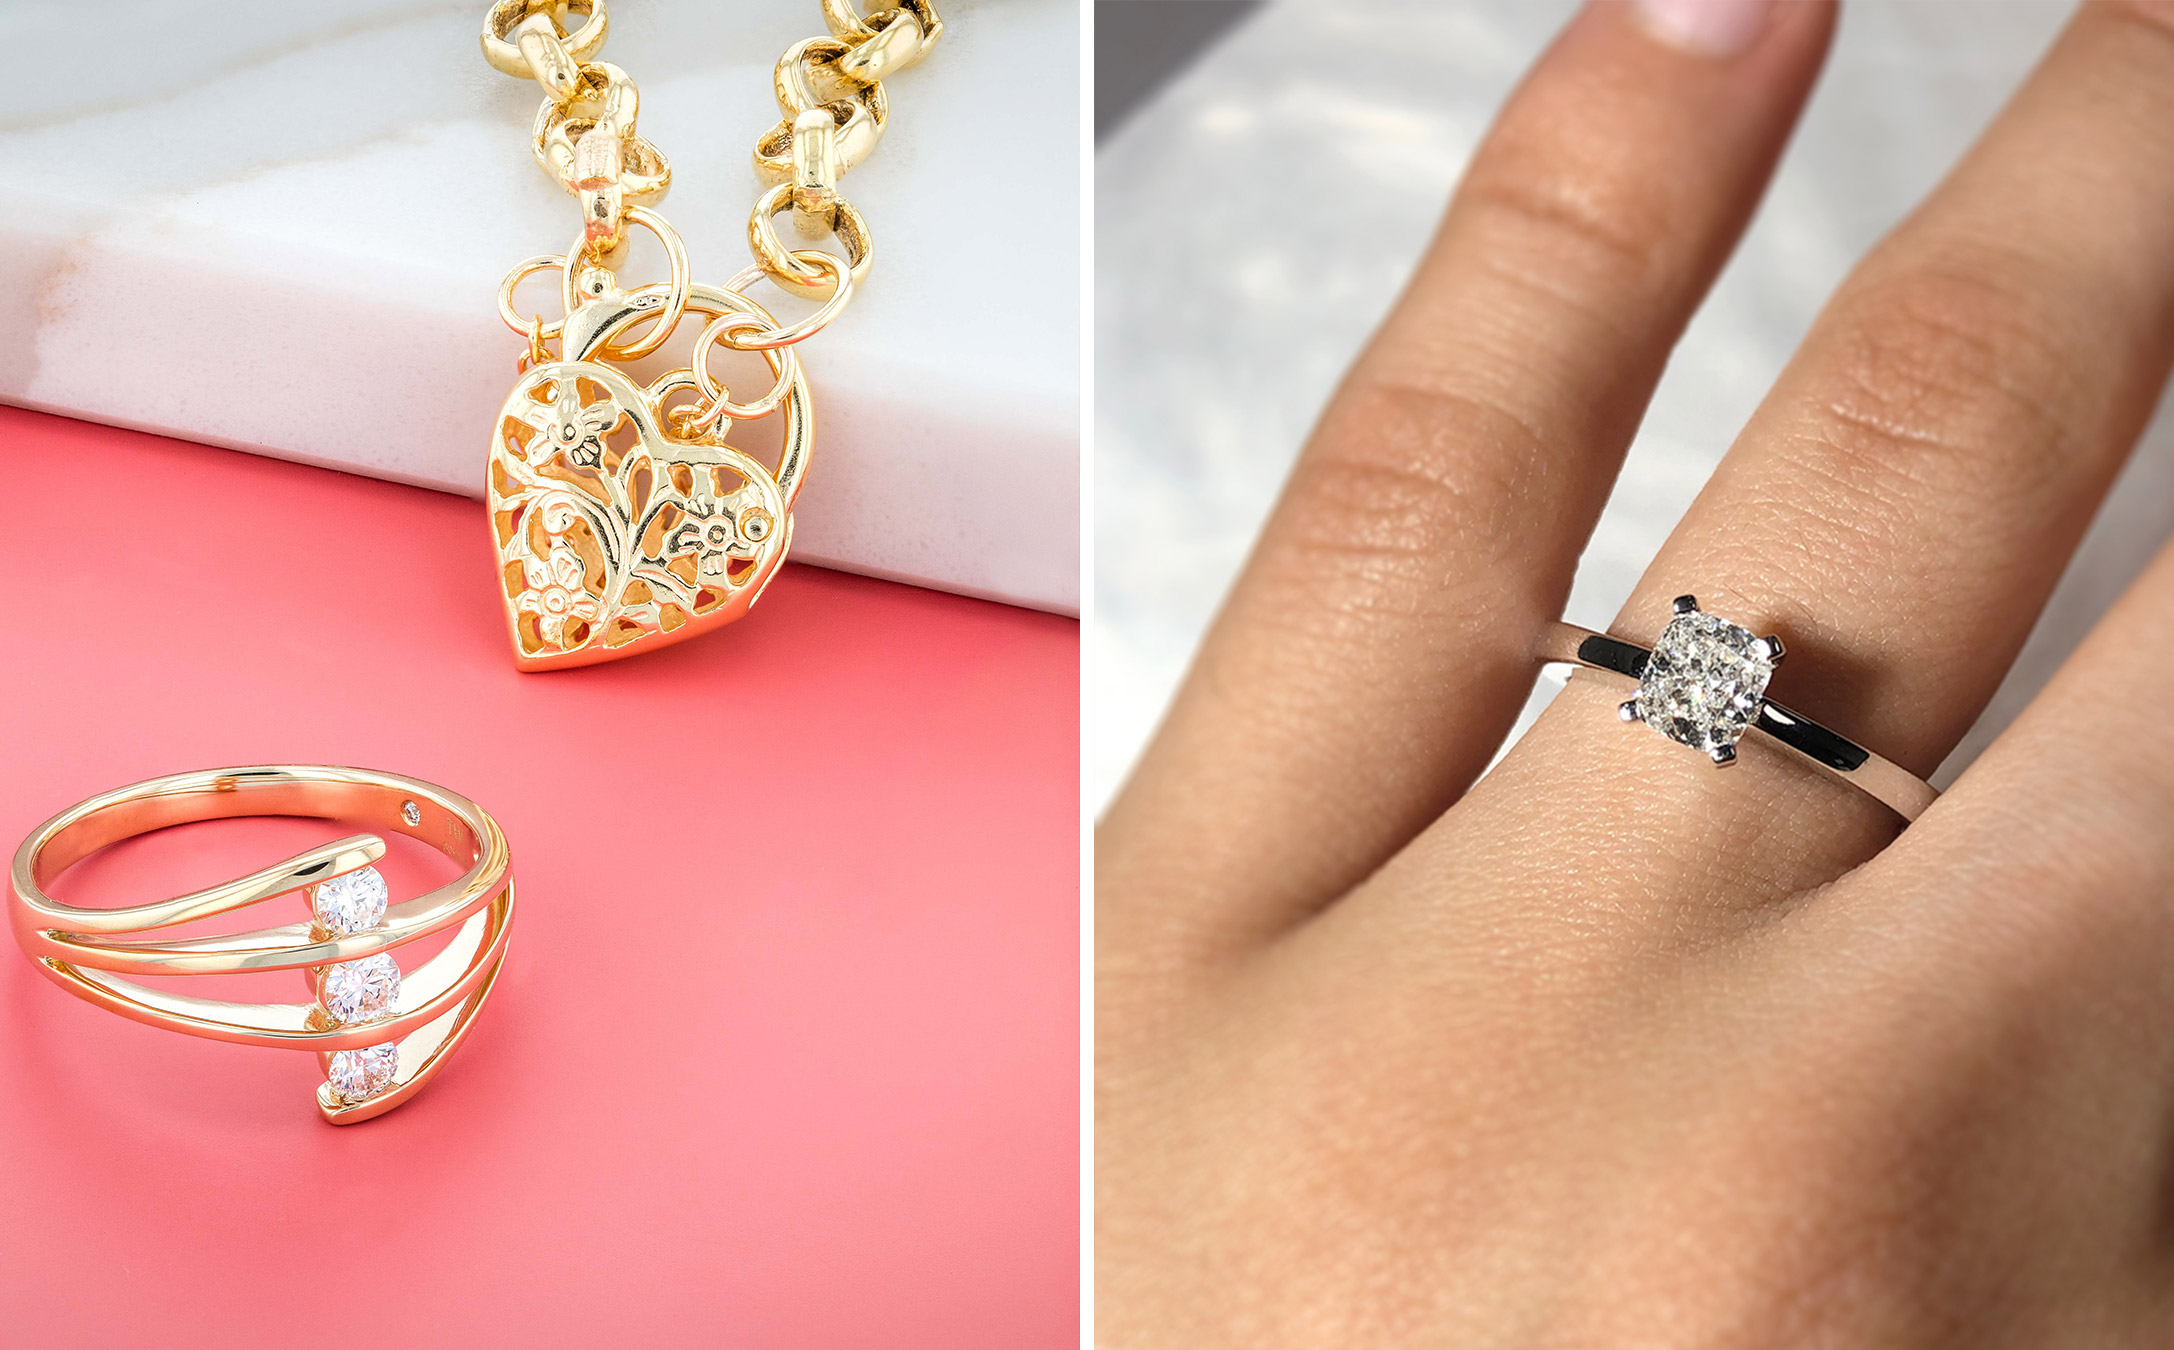 how to make your diamond look bigger: use shiny metals